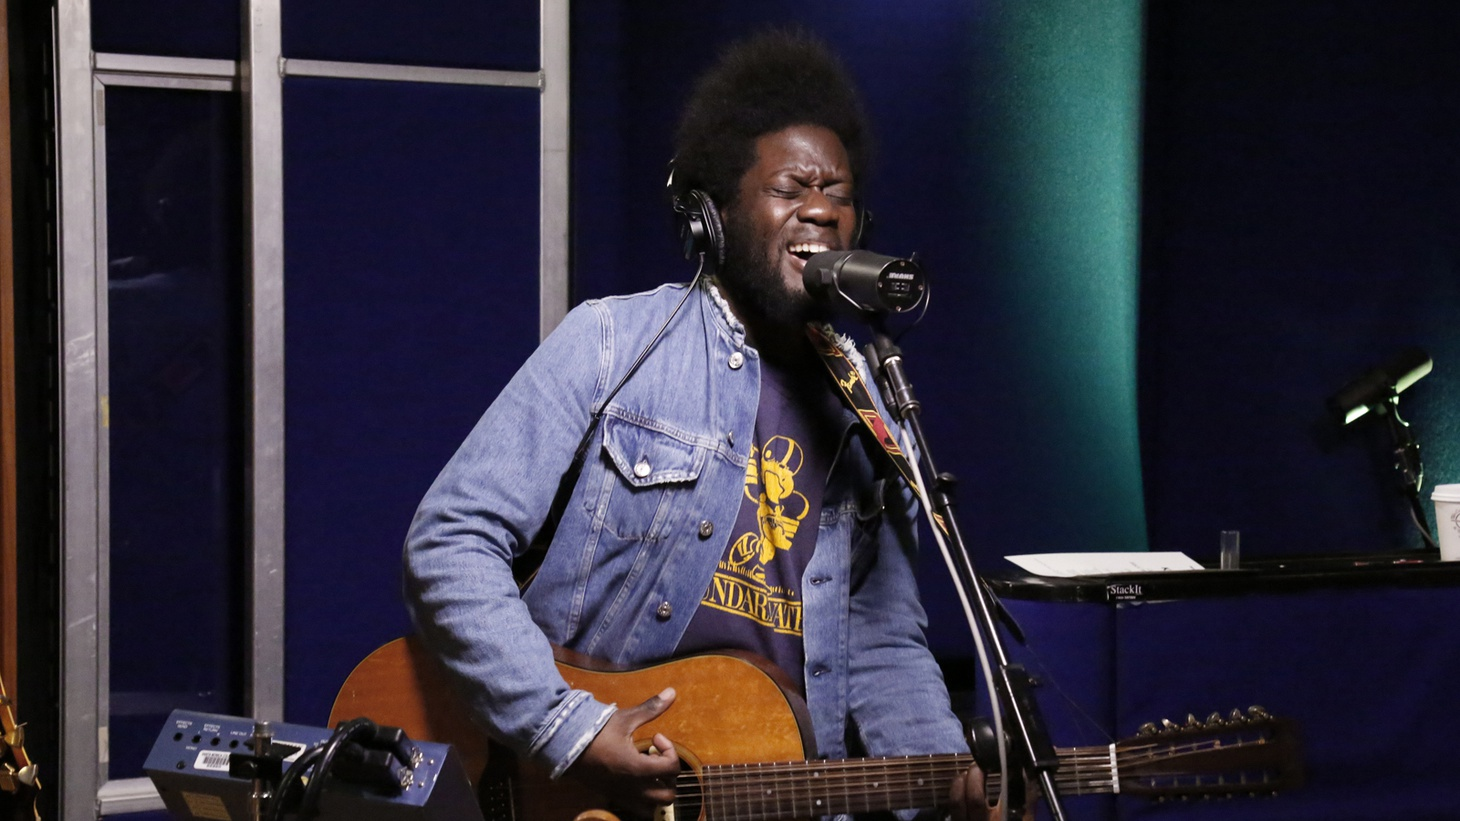 UK soul singer Michael Kiwanuka took some time after the release of his acclaimed debut to figure out what he really wanted to say next.